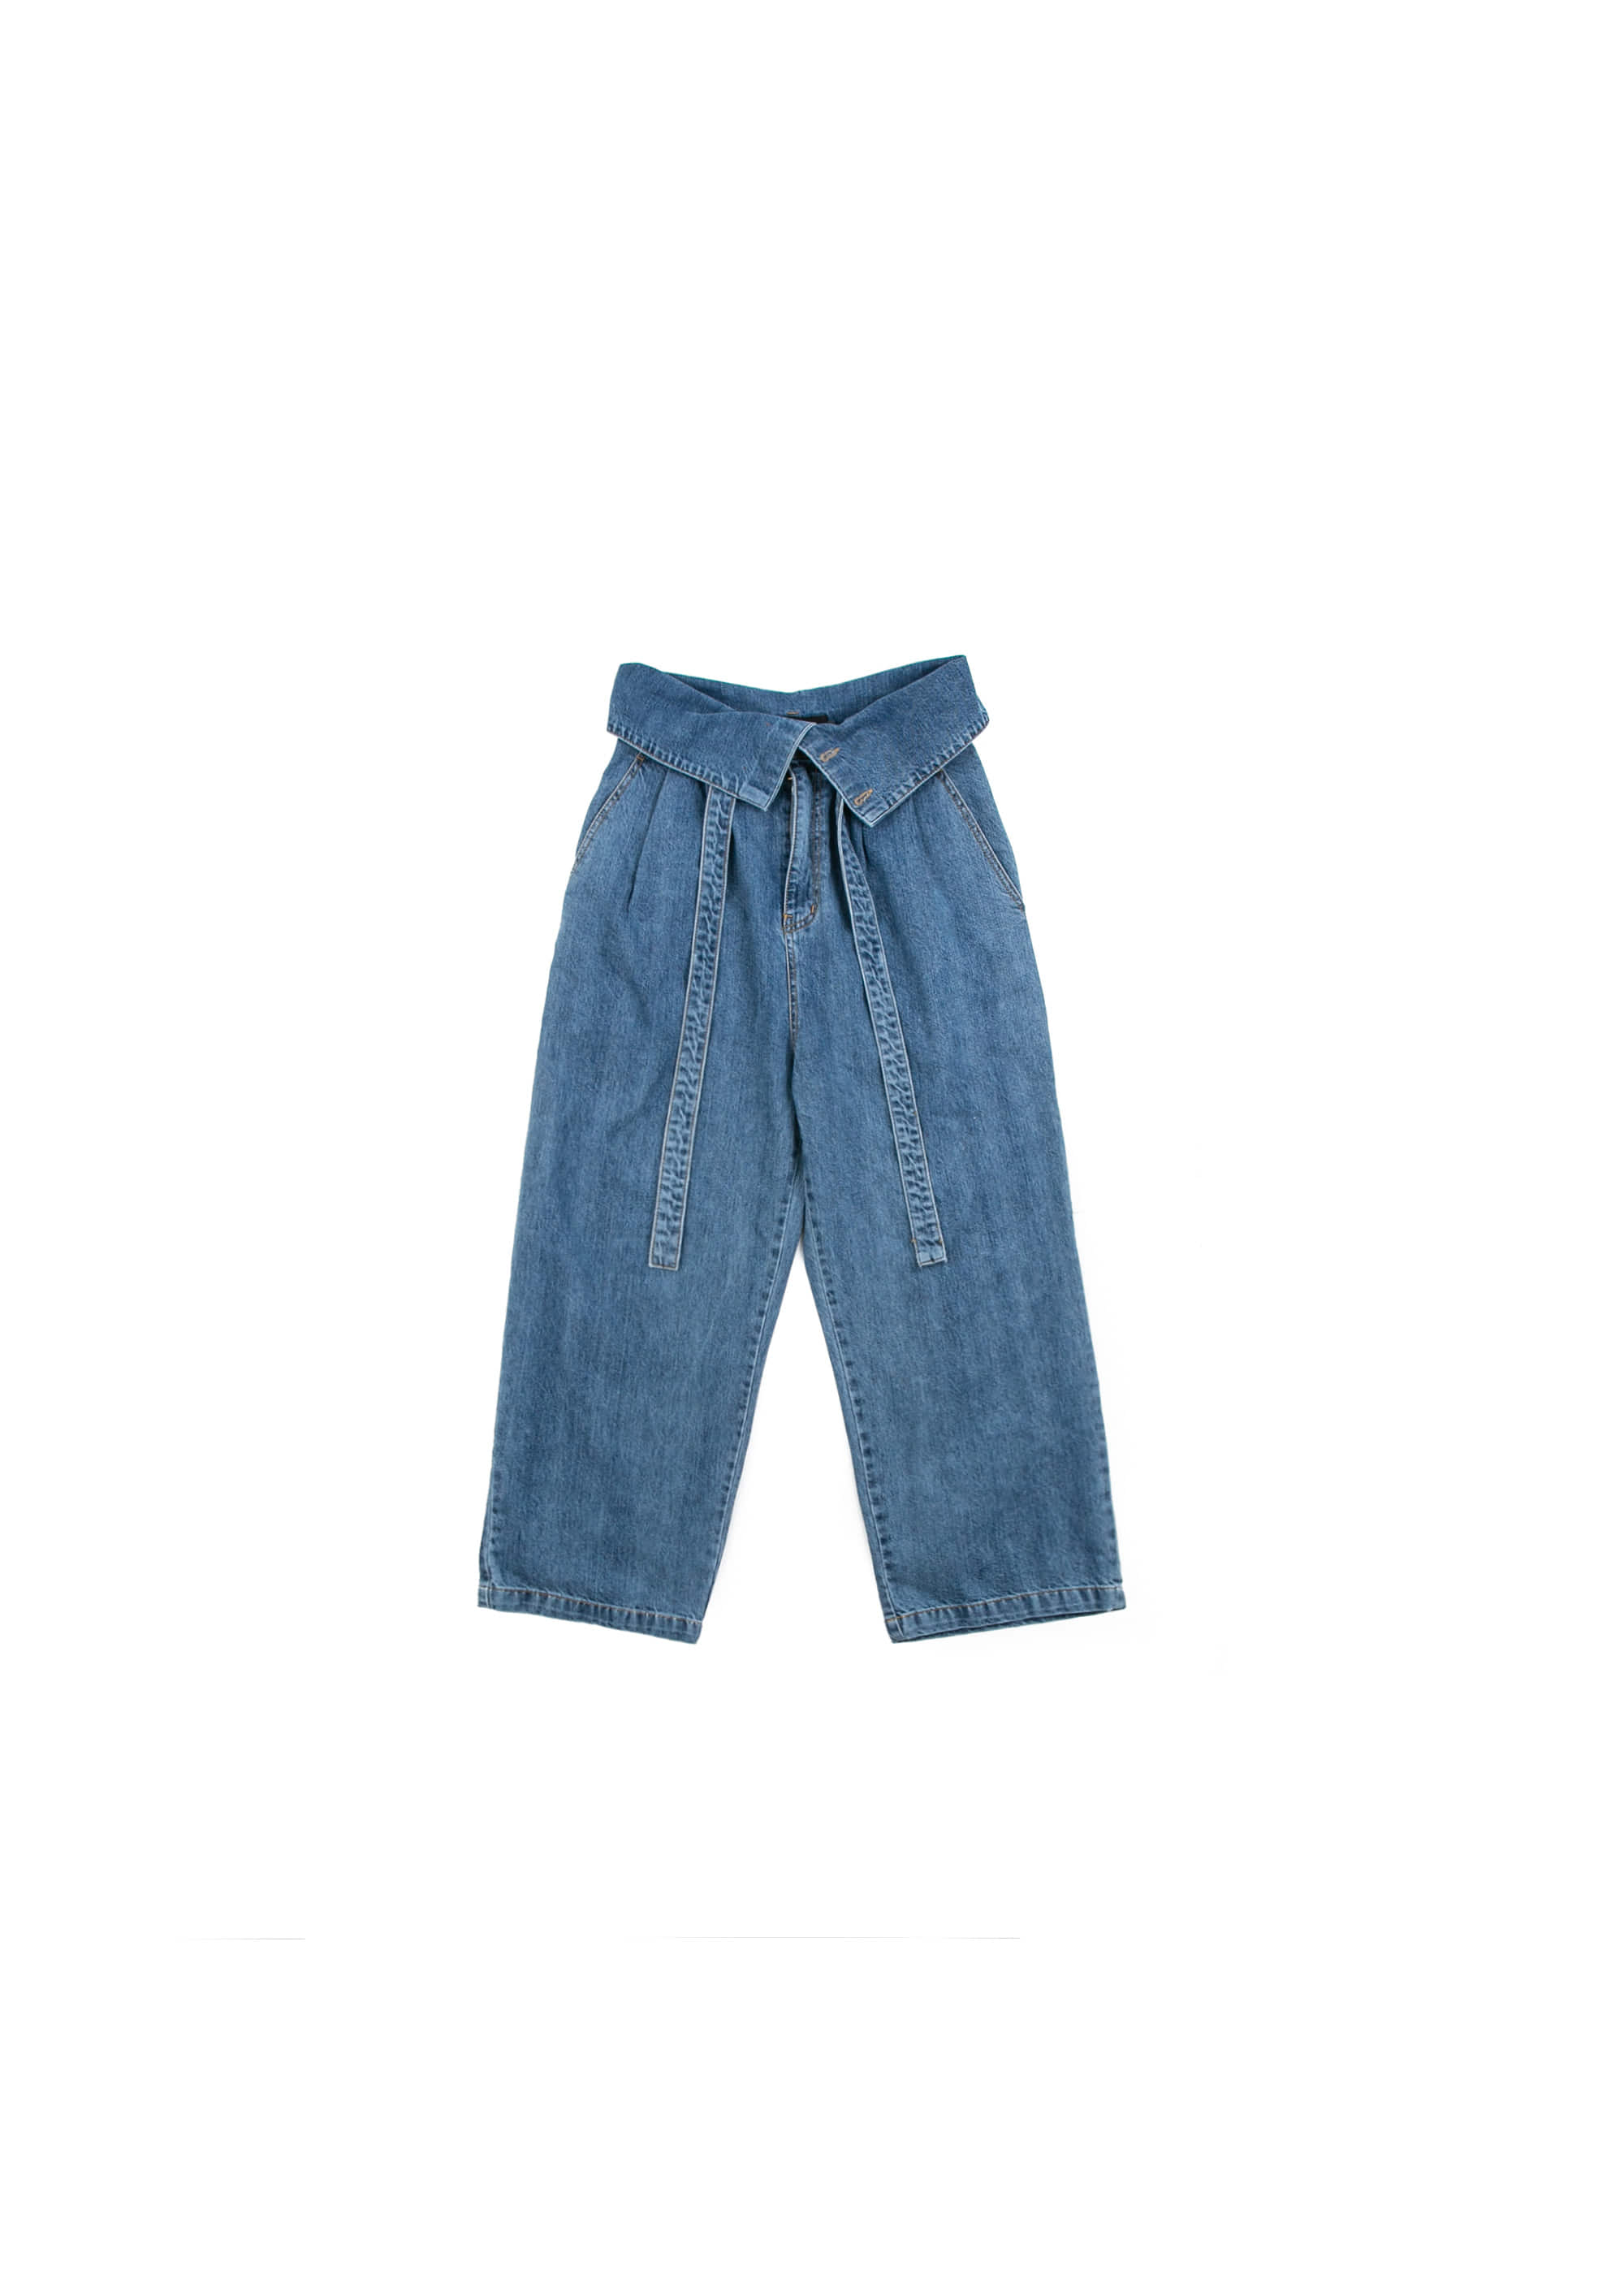 [U] Over Fold Denim Pants